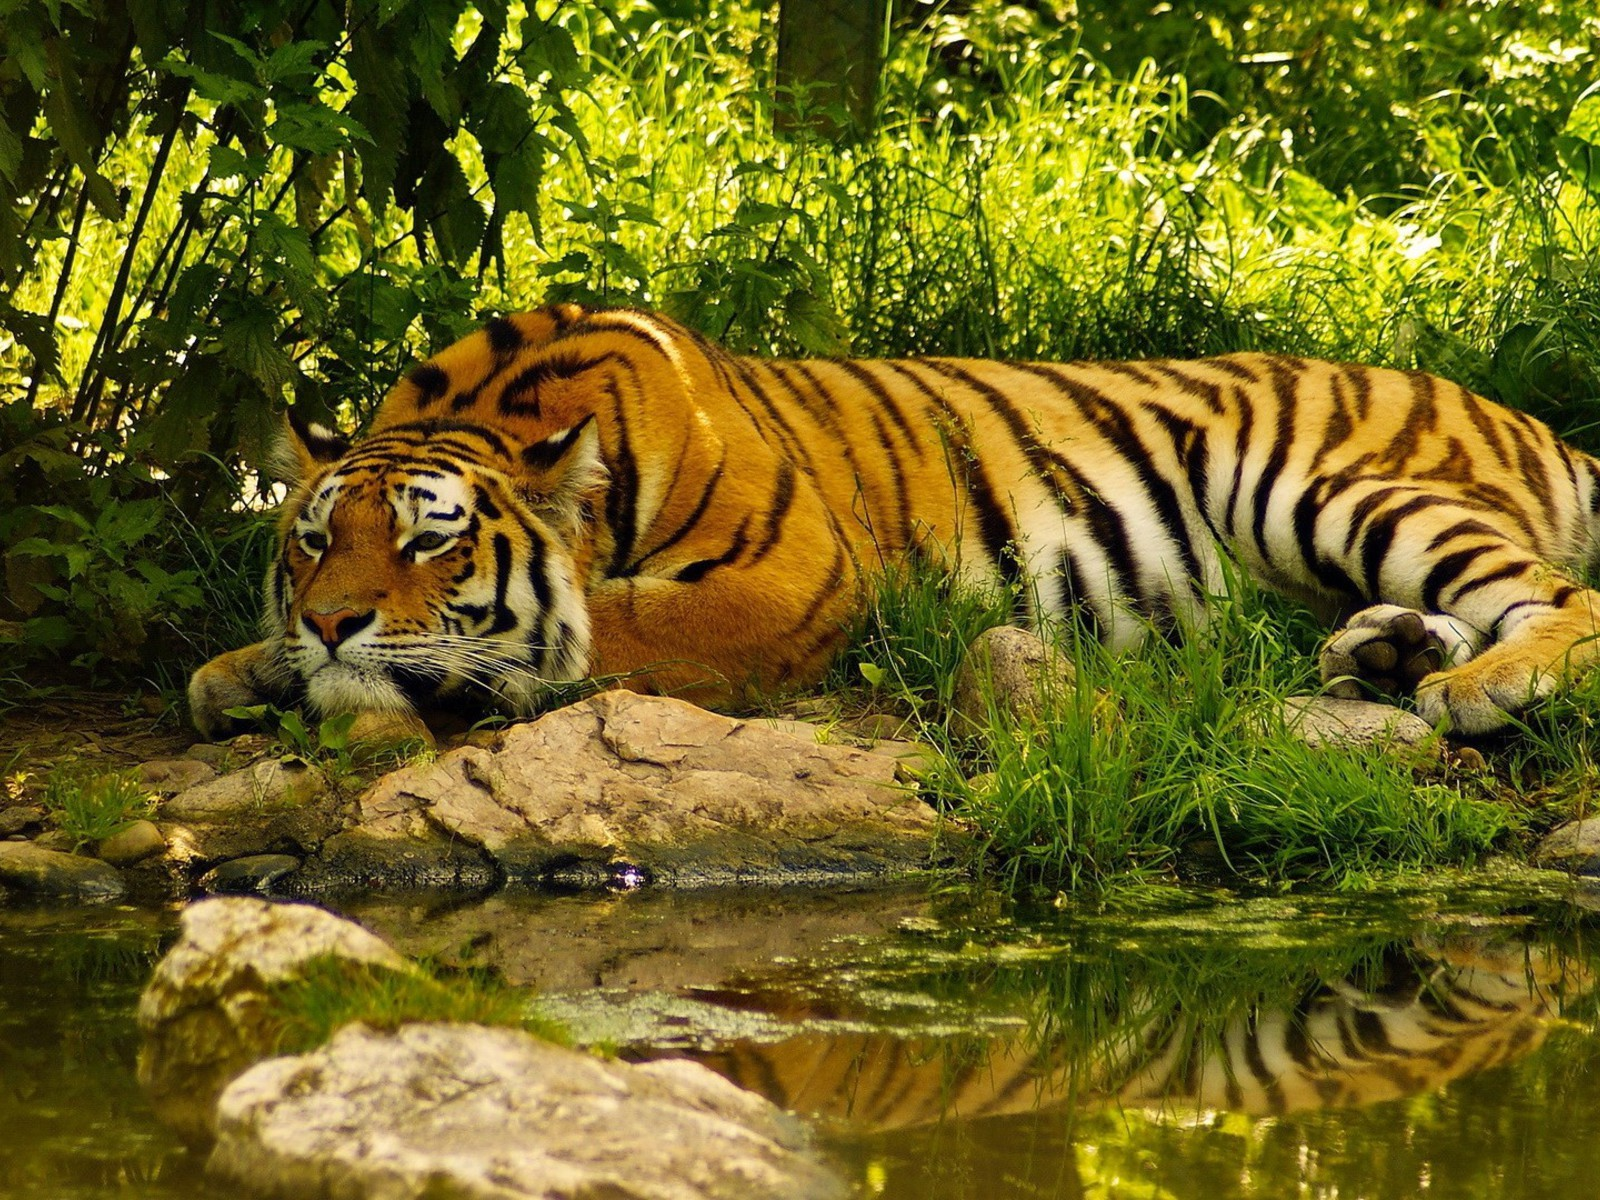 Yawning Tiger - Cats & Animals Background Wallpapers on ... |Bengal Tiger Tired